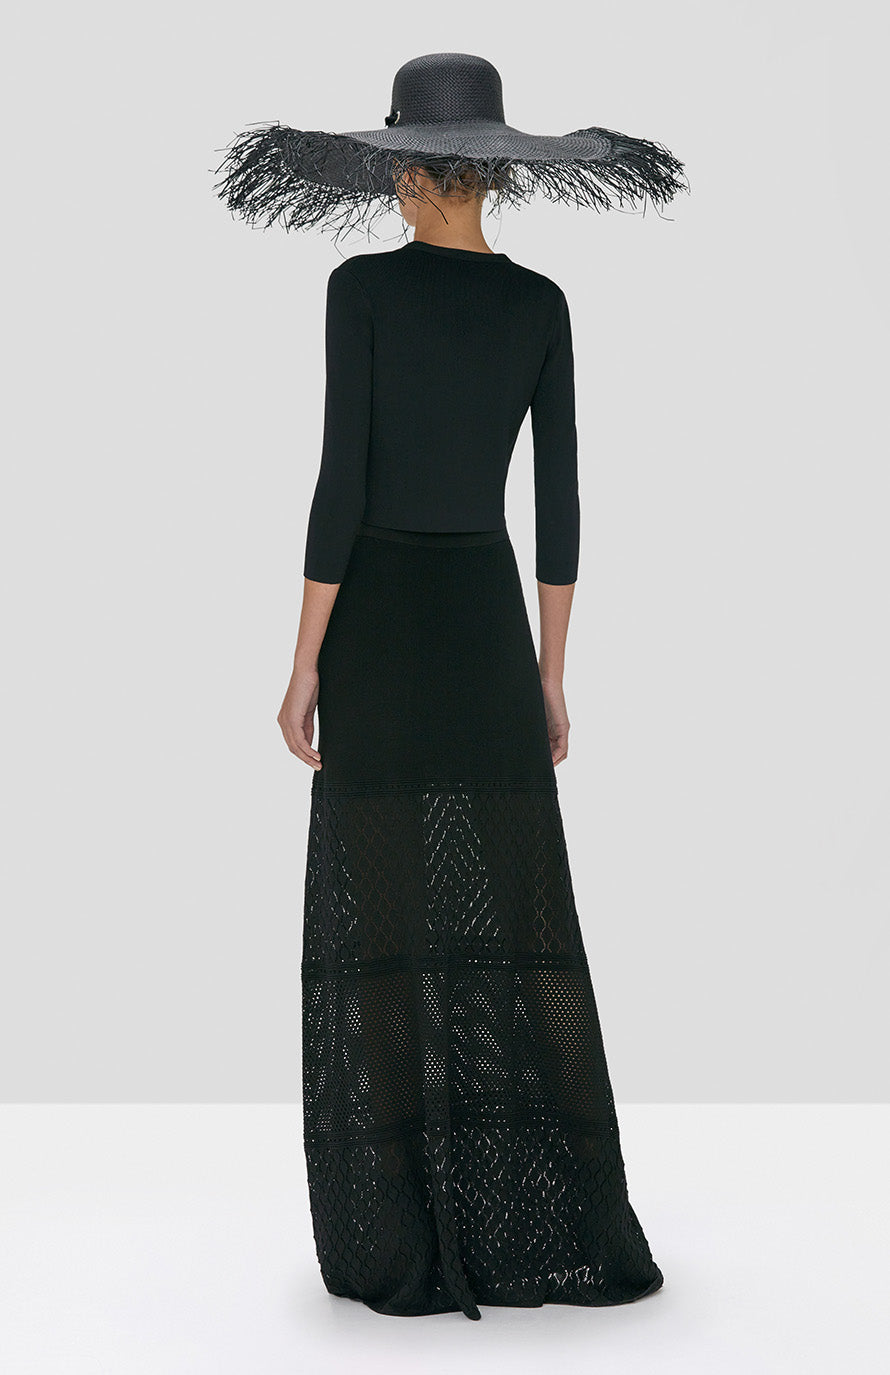 Alexis Ecco Skirt in Black and Petal Cardigan in Black from Spring Summer 2020 Collection - Rear View